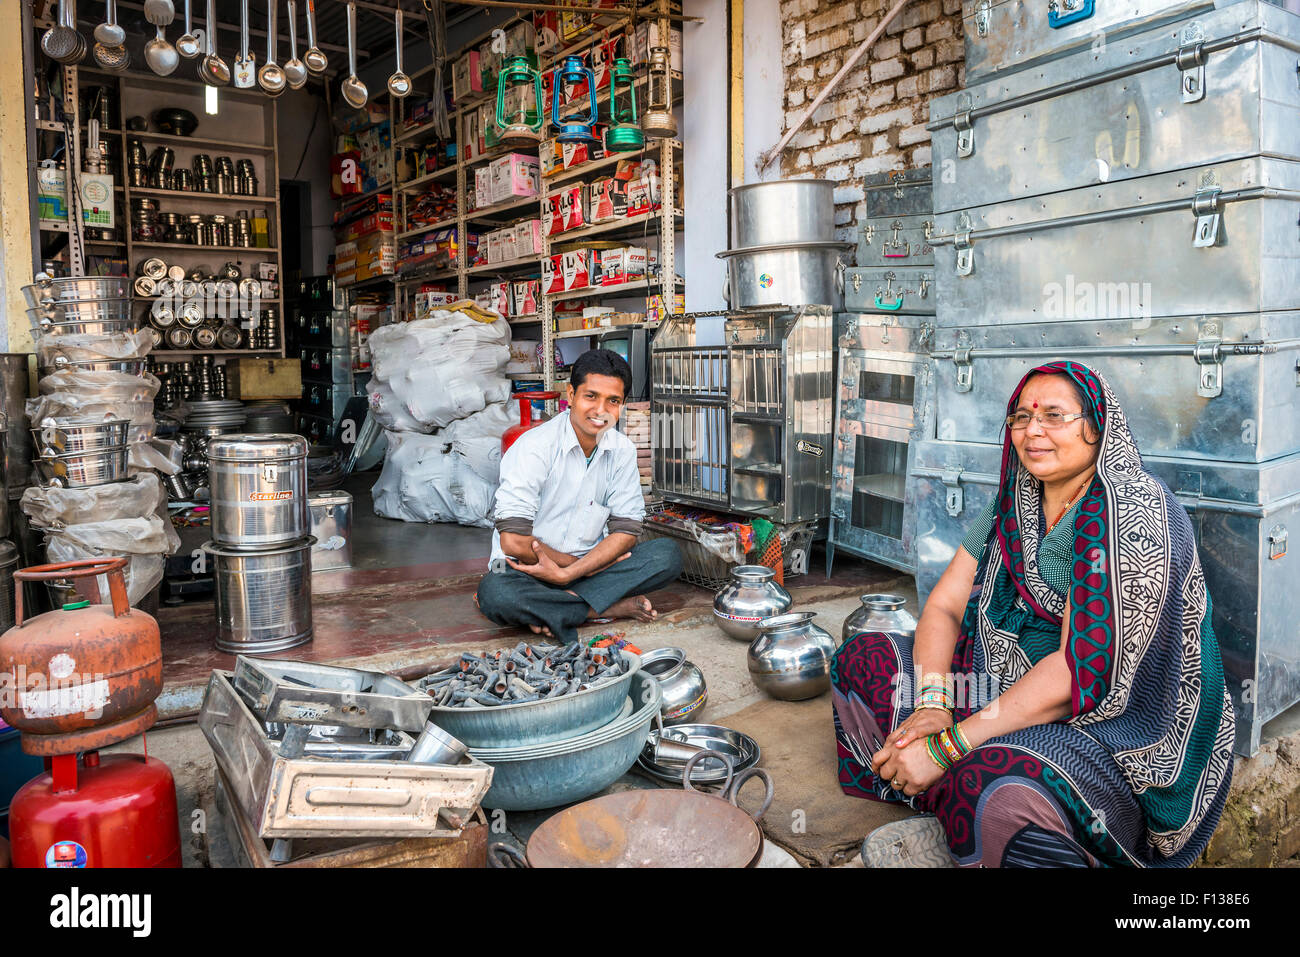 Sellers of metal goods and home wares in their shop in Chitrakoot    Chitrakut   Madhya Pradesh  India. Sellers of metal goods and home wares in their shop in Chitrakoot